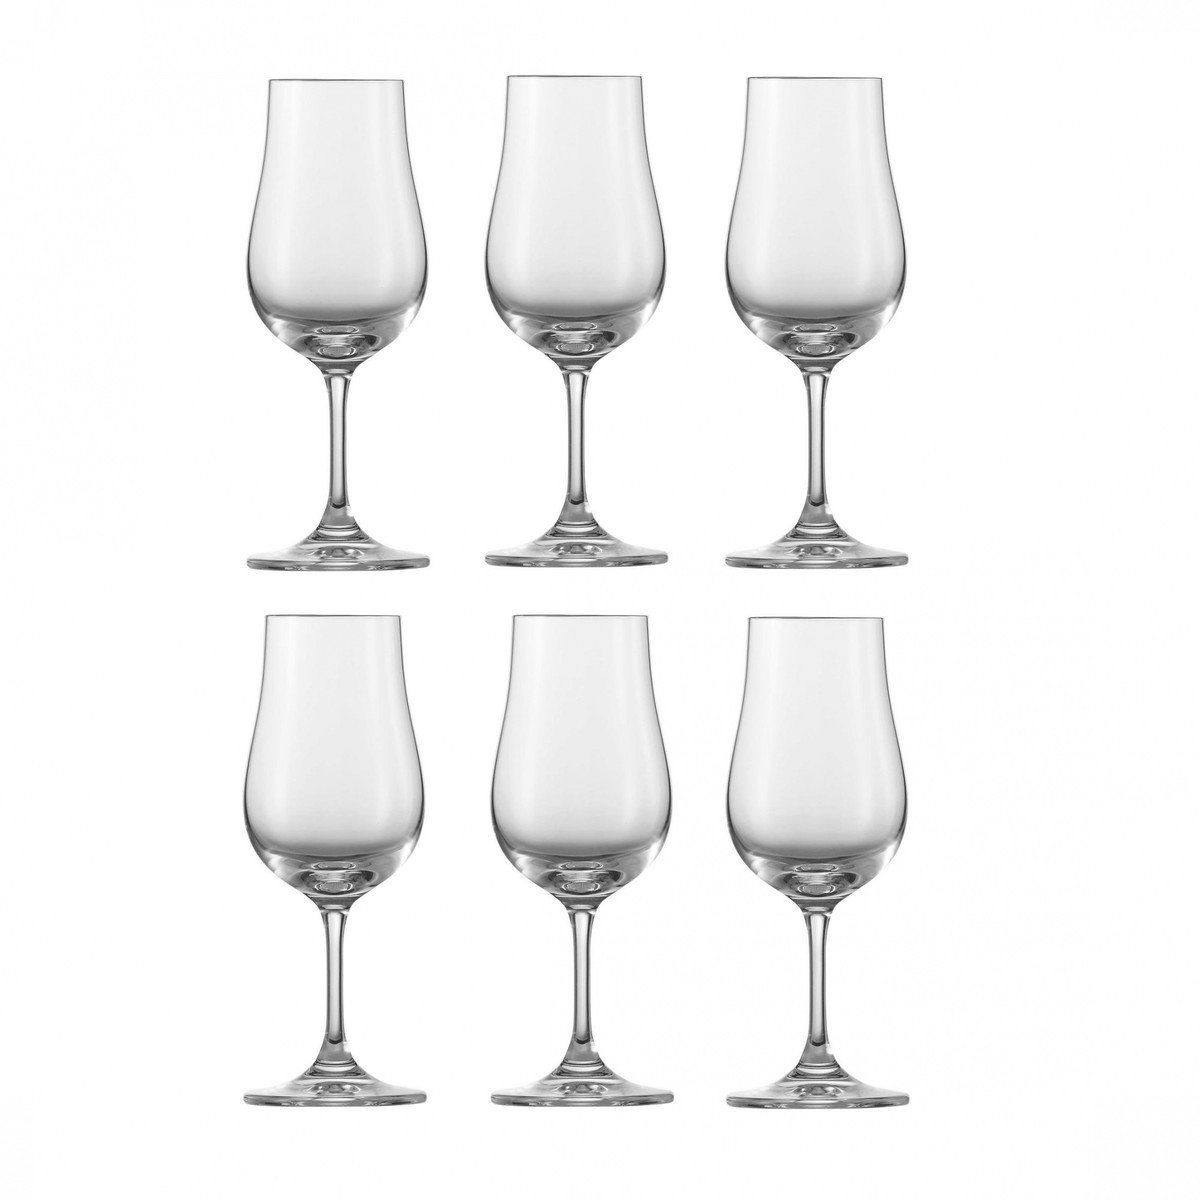 bar special whisky nosing glass set of 6 schott zwiesel. Black Bedroom Furniture Sets. Home Design Ideas